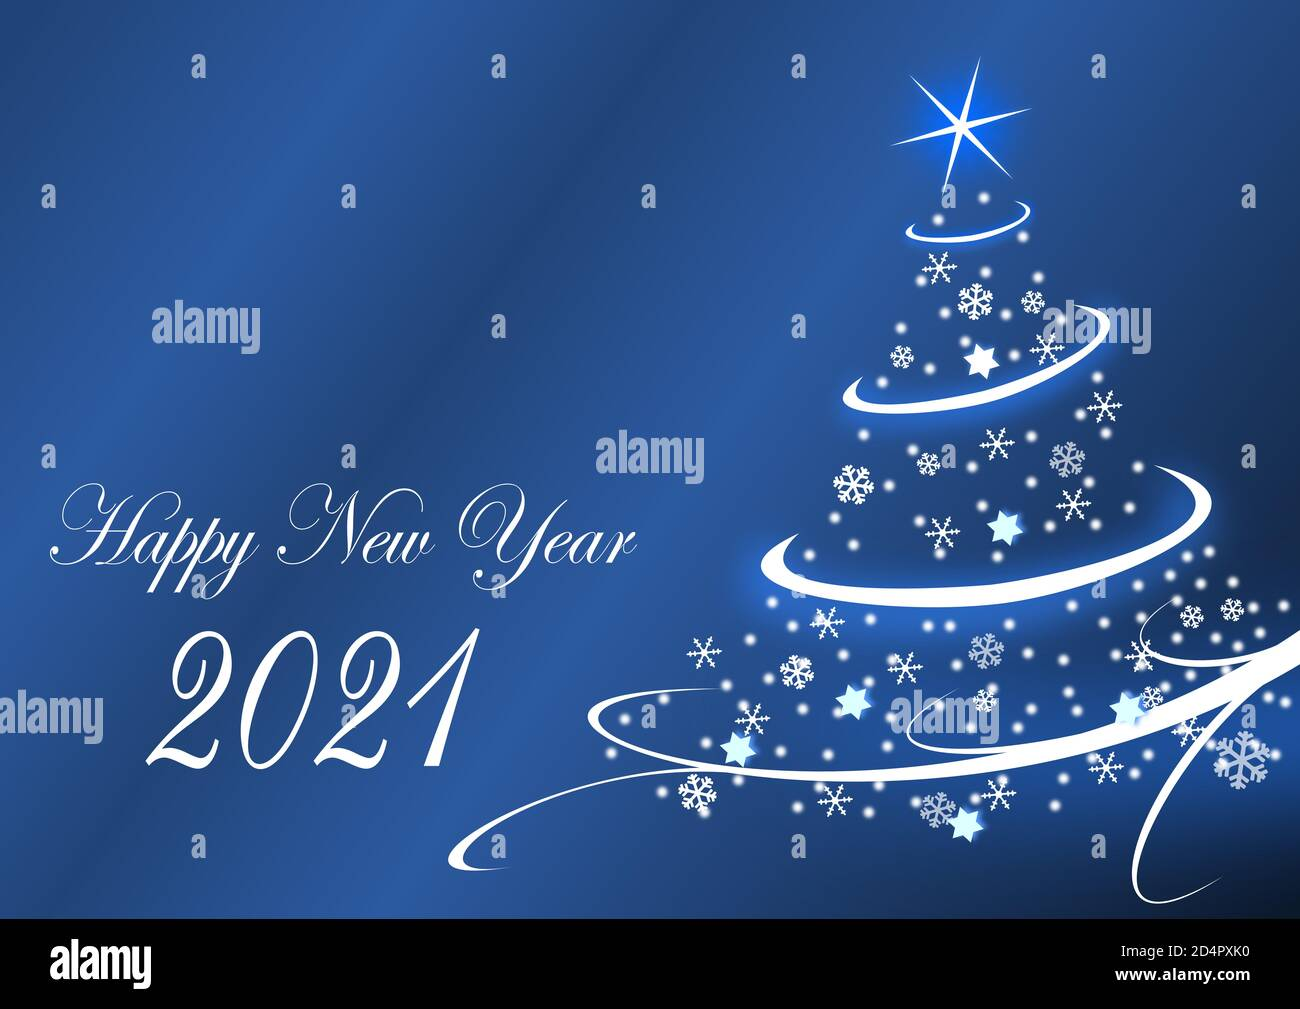 happy new year 2021 greeting card with christmas tree on